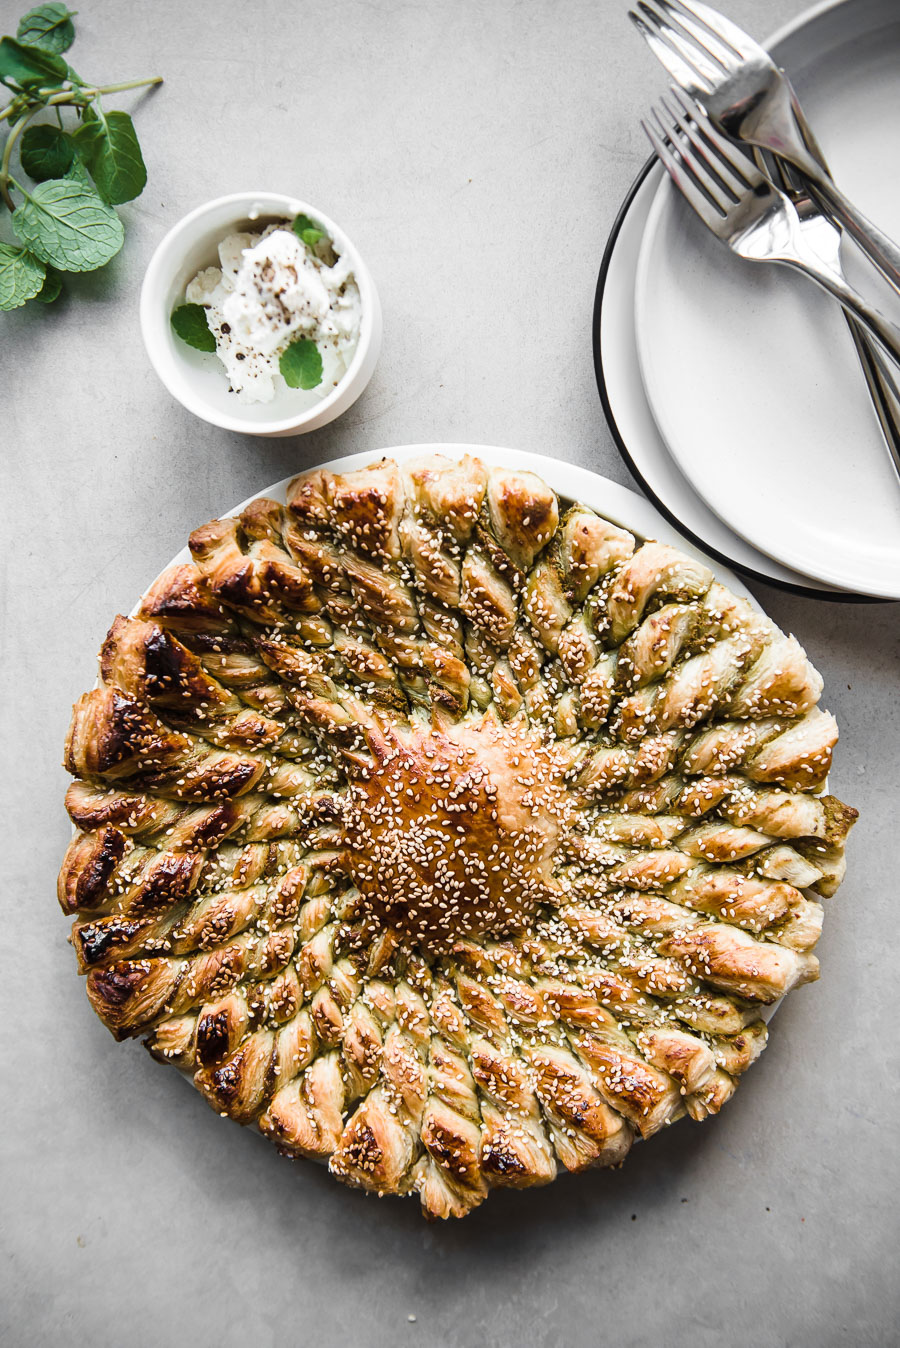 Pistachio Olive Pesto Tarte Soleil - Gather A Table